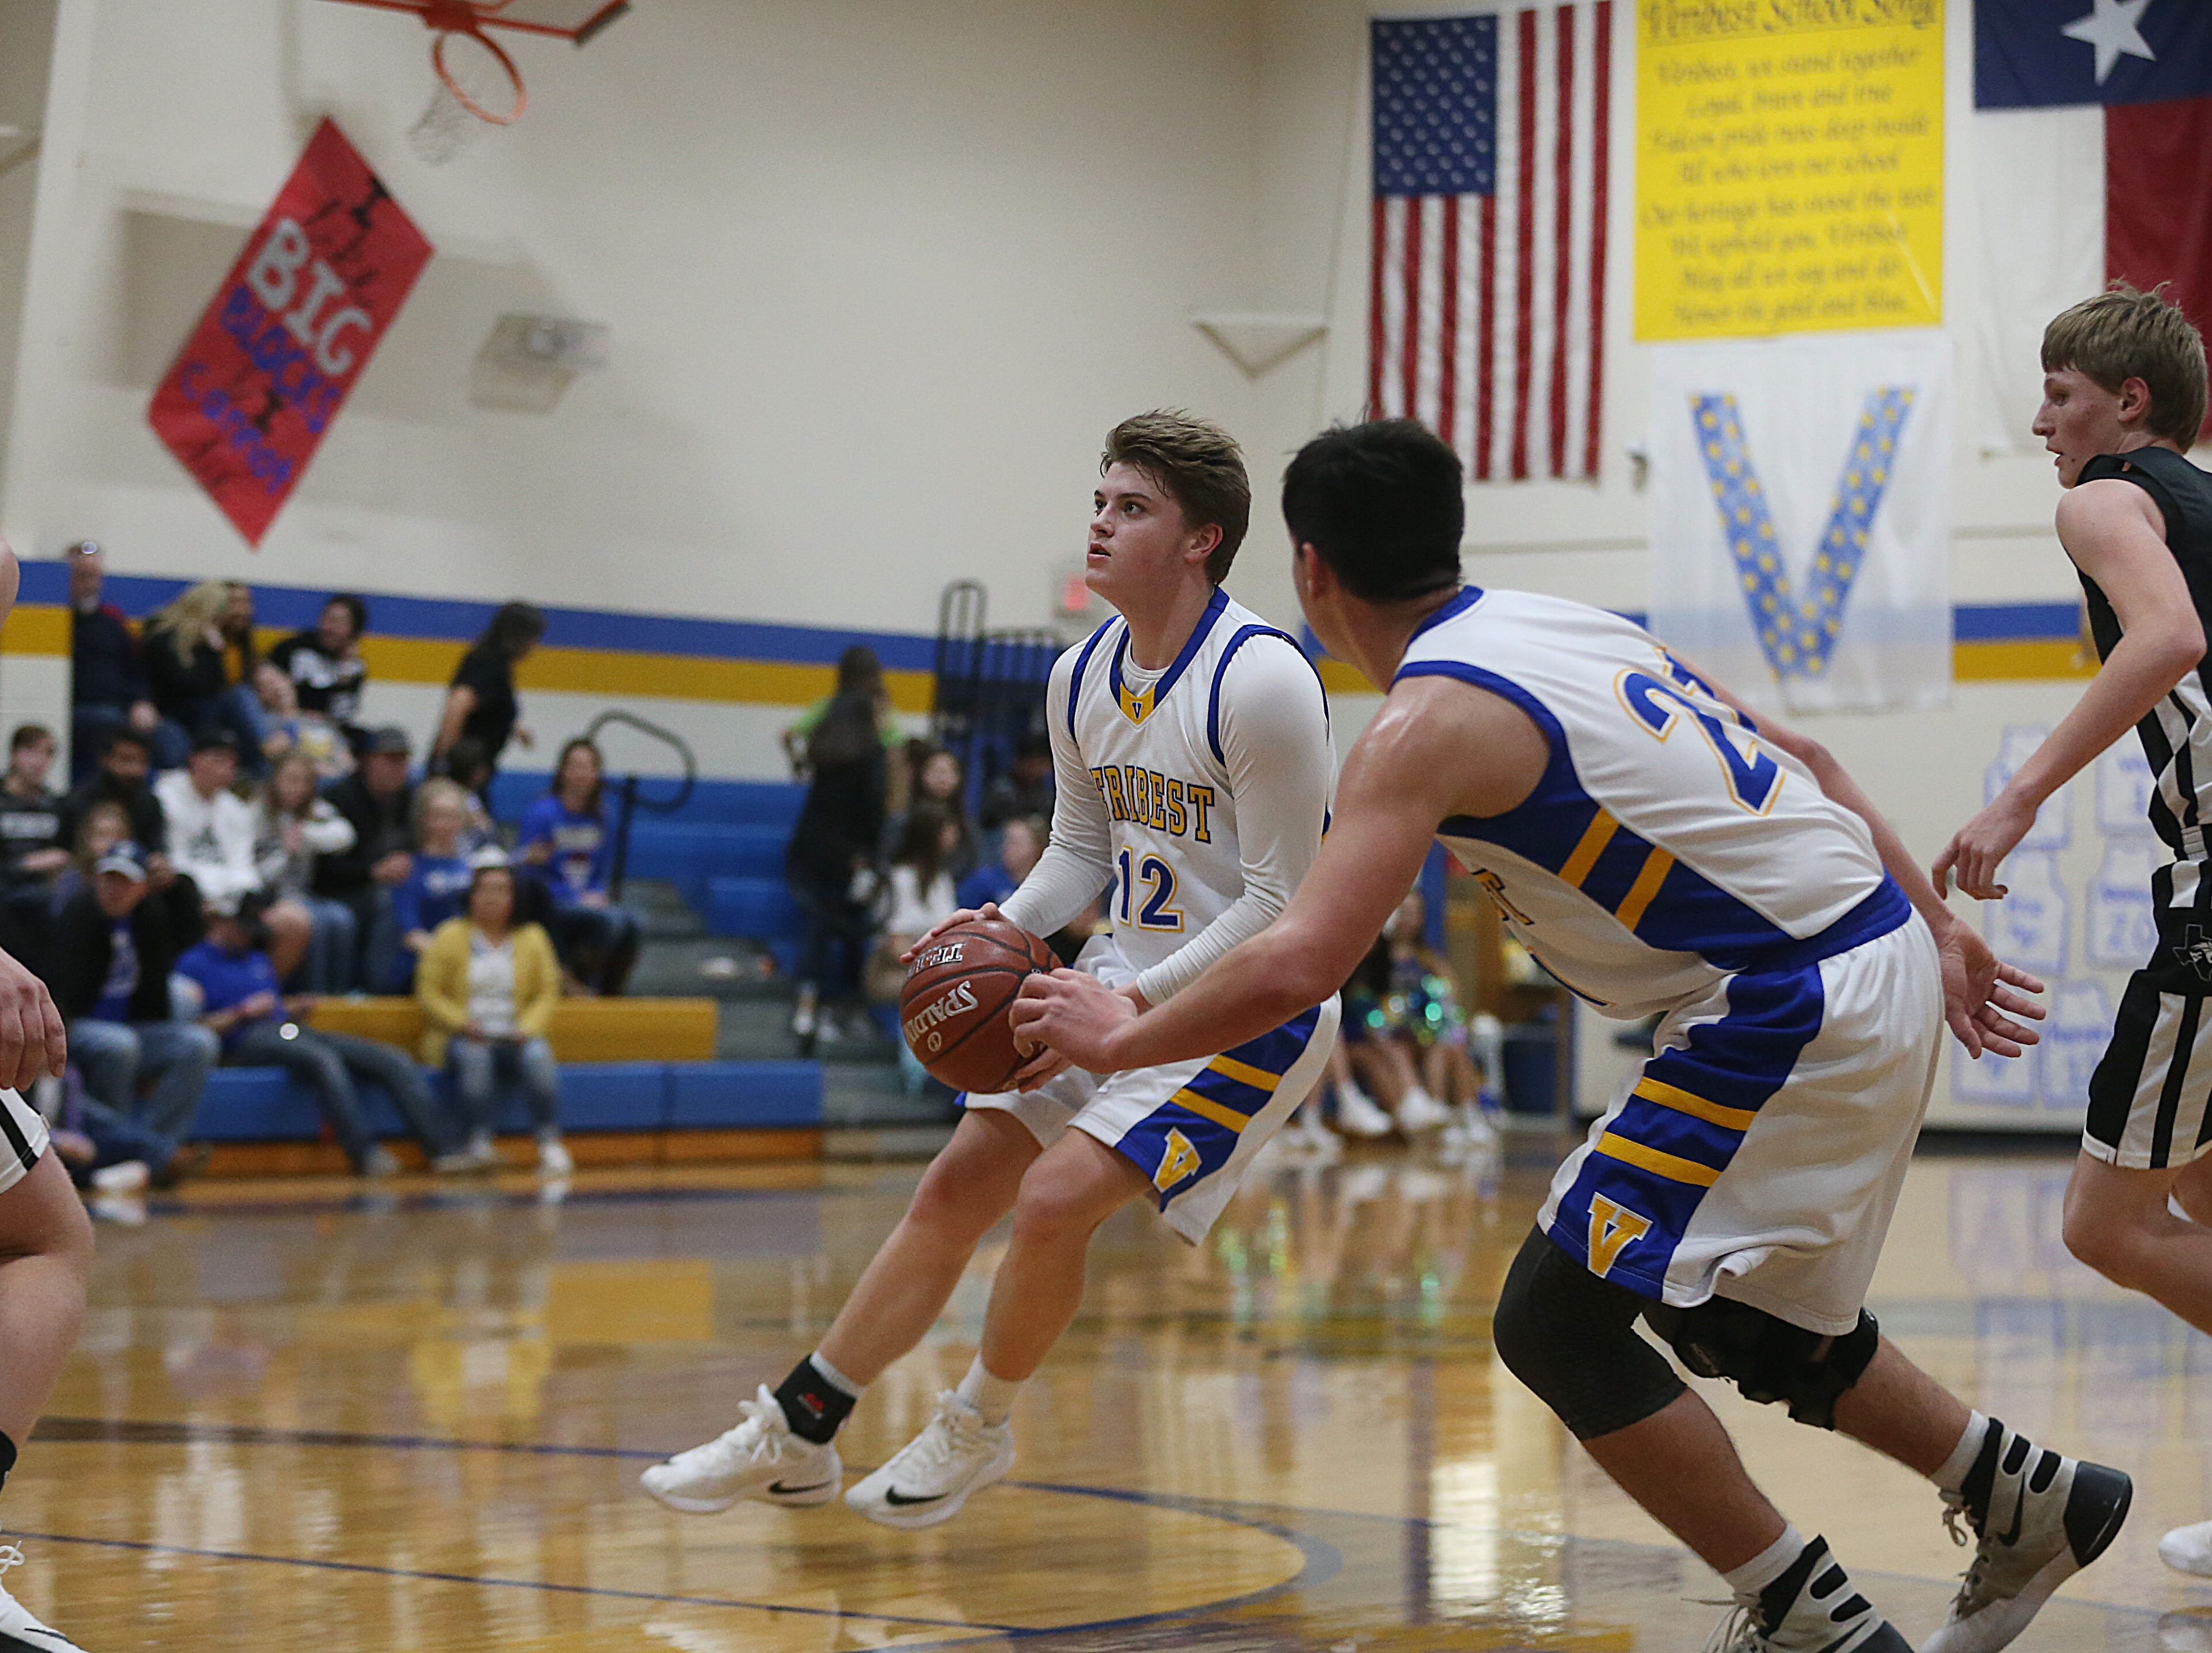 Veribest's Parker Compton (#12) prepares to shoot the ball Tuesday, Jan. 8, 2019 during the game against Water Valley.